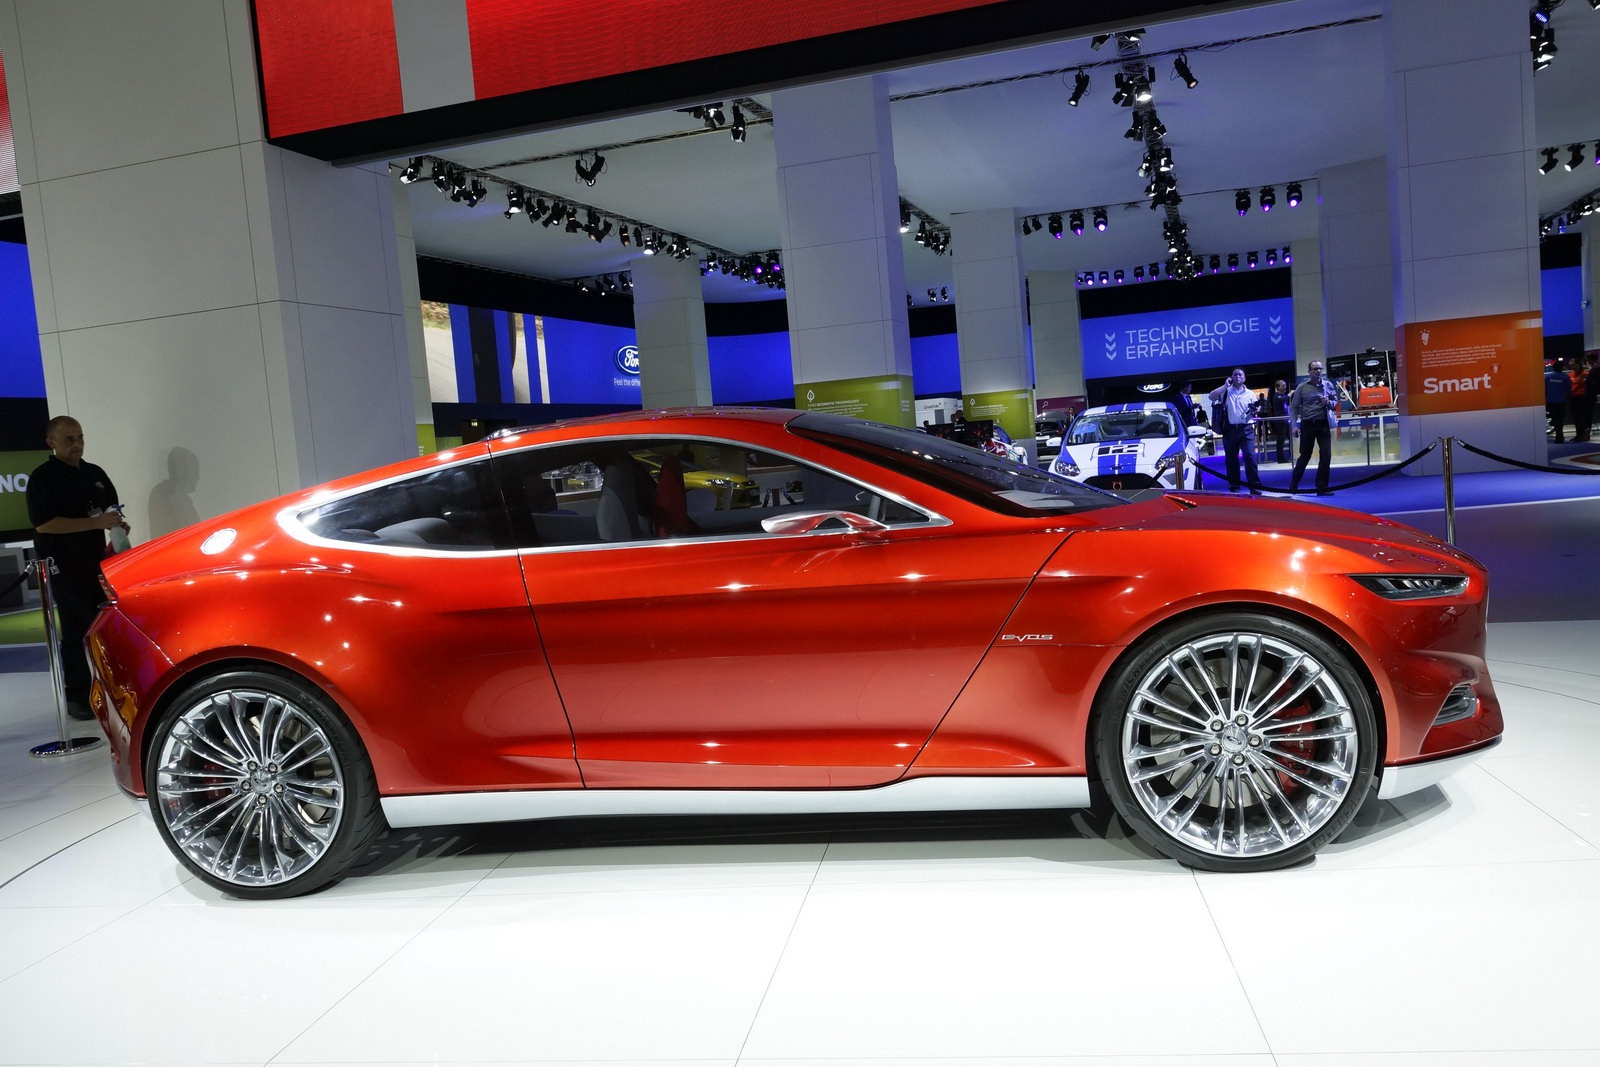 2019 Ford Mustang GT Coupe Concept photo - 3